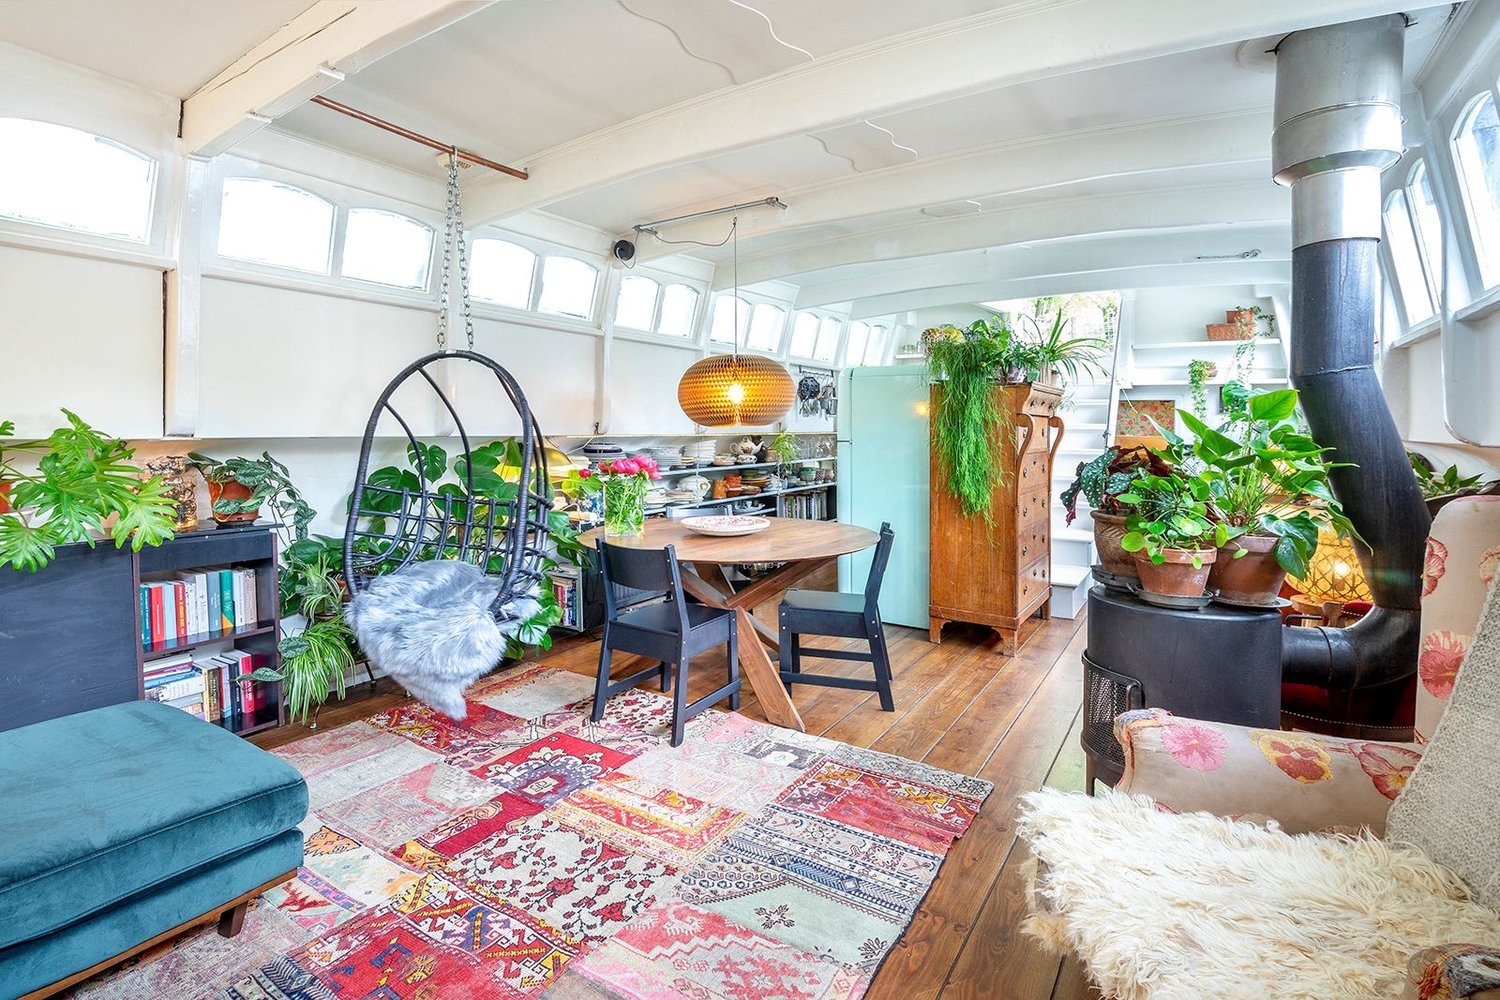 The Nordroom - A Bohemian Houseboat in Amsterdam